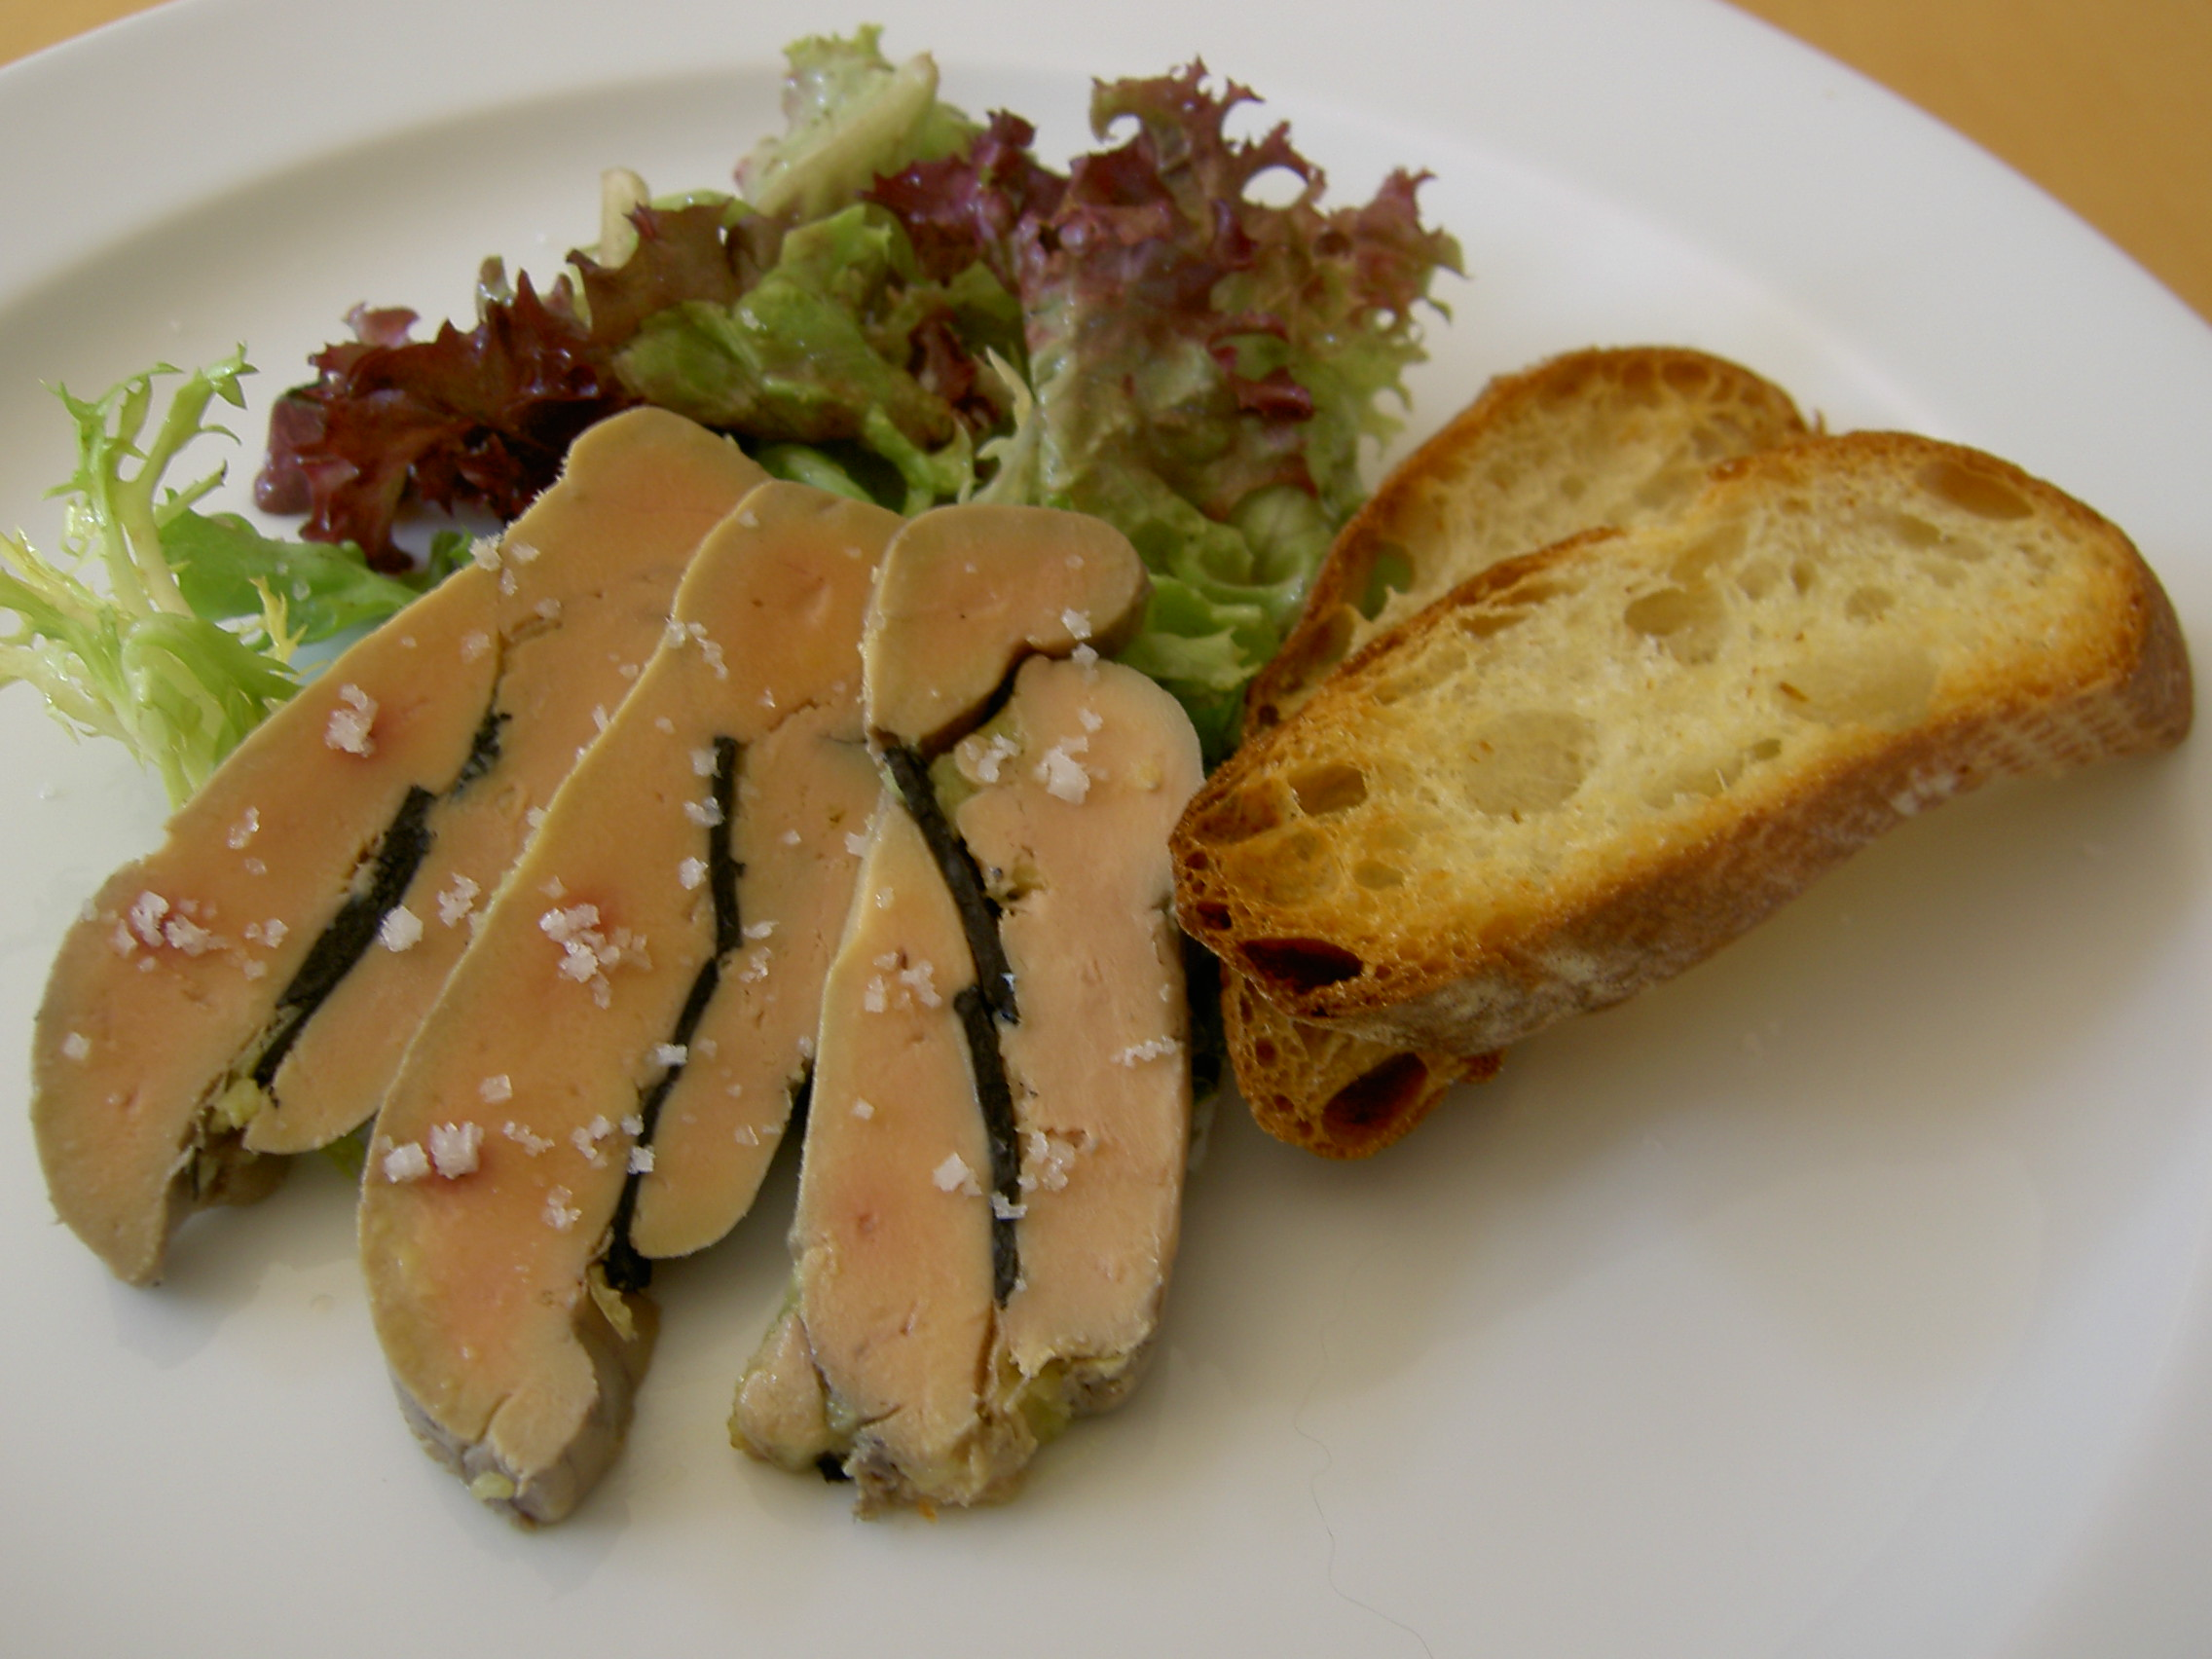 Foie gras terrine with black truffles. (Photo courtesy Google Images)